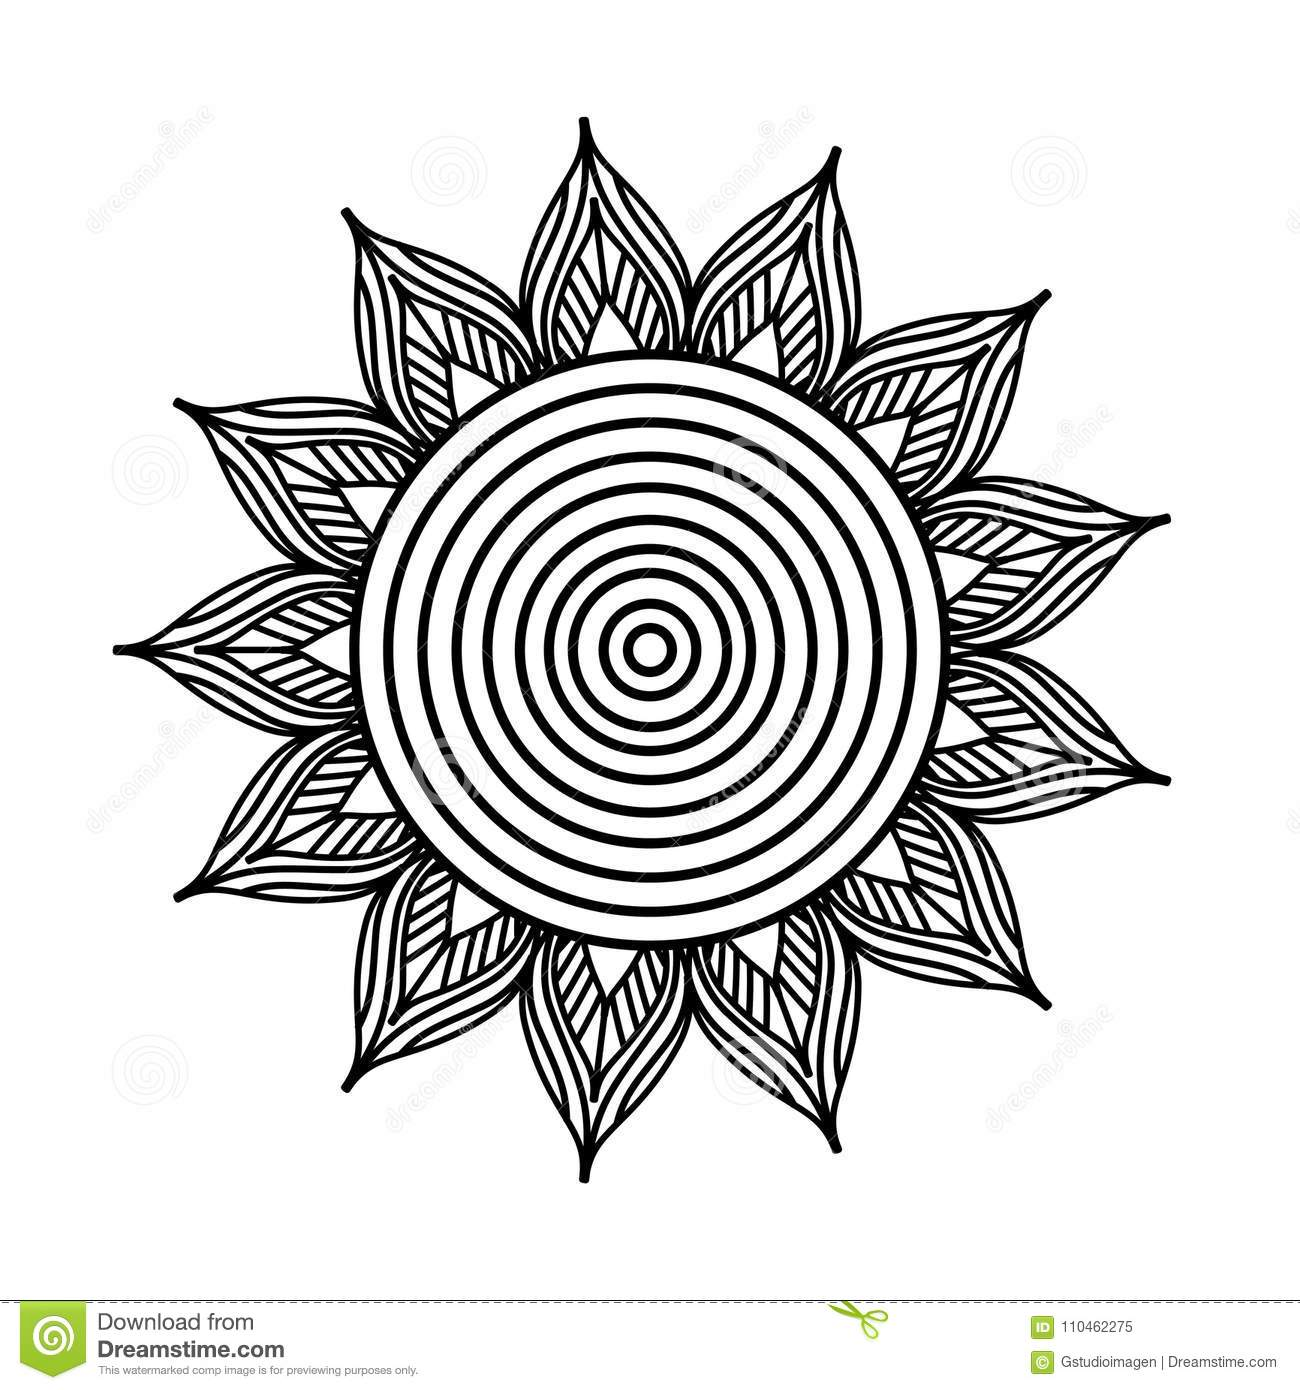 Download Flower Mandala Ornament Decorative Element Oriental Adult Coloring Book Page Stock Vector